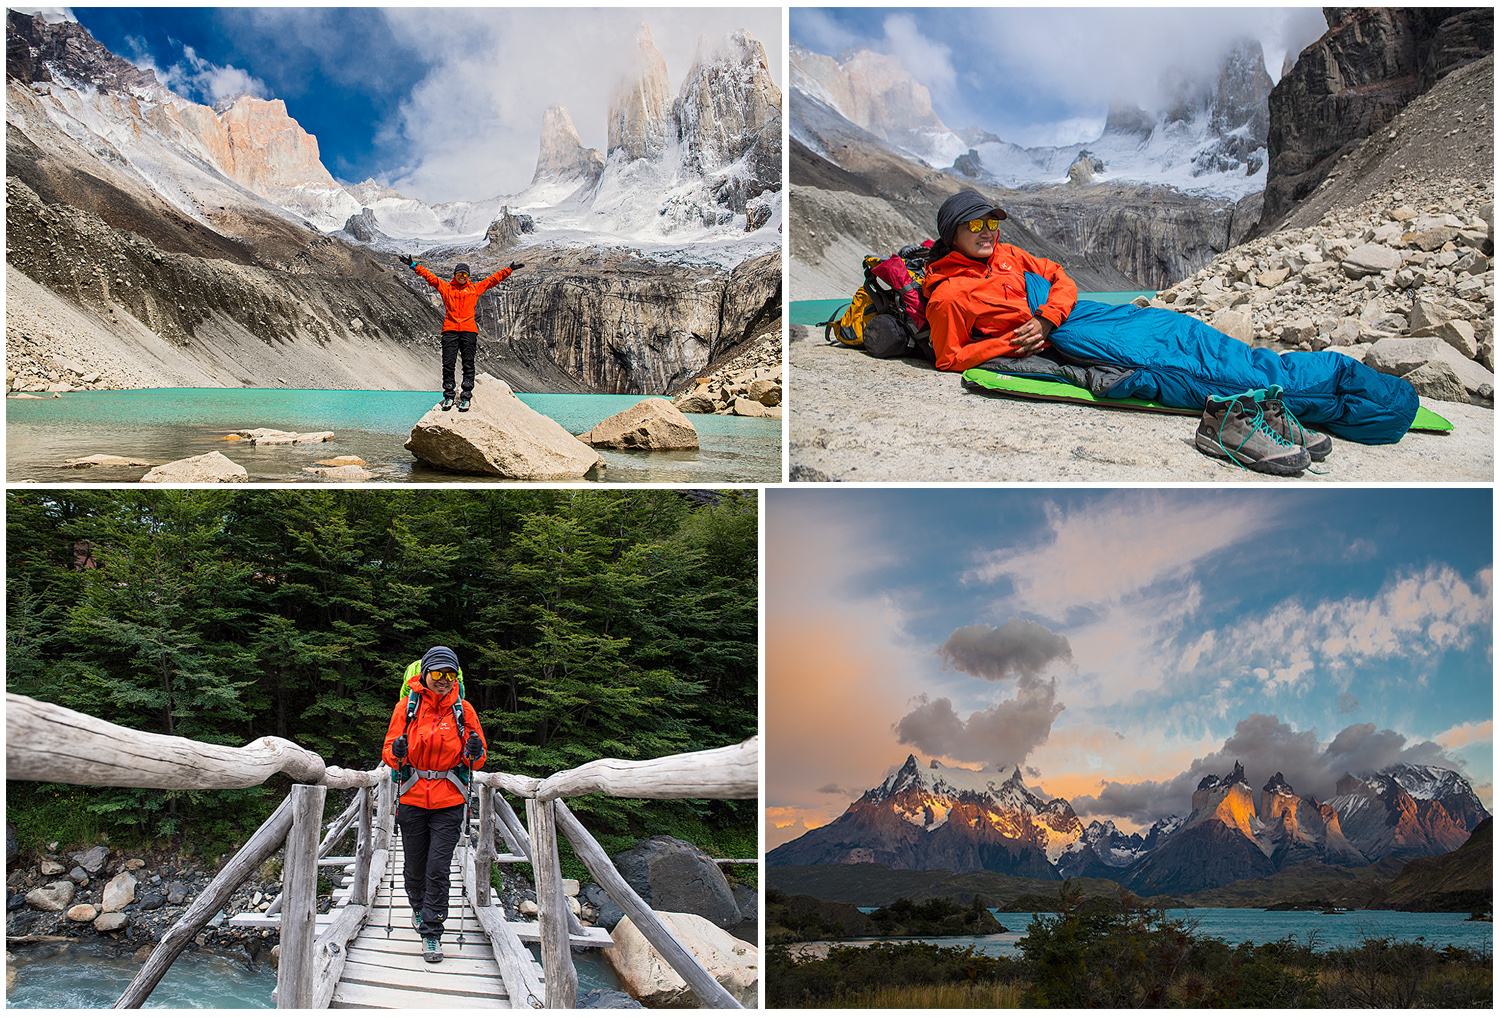 impressions from Torres del Paine